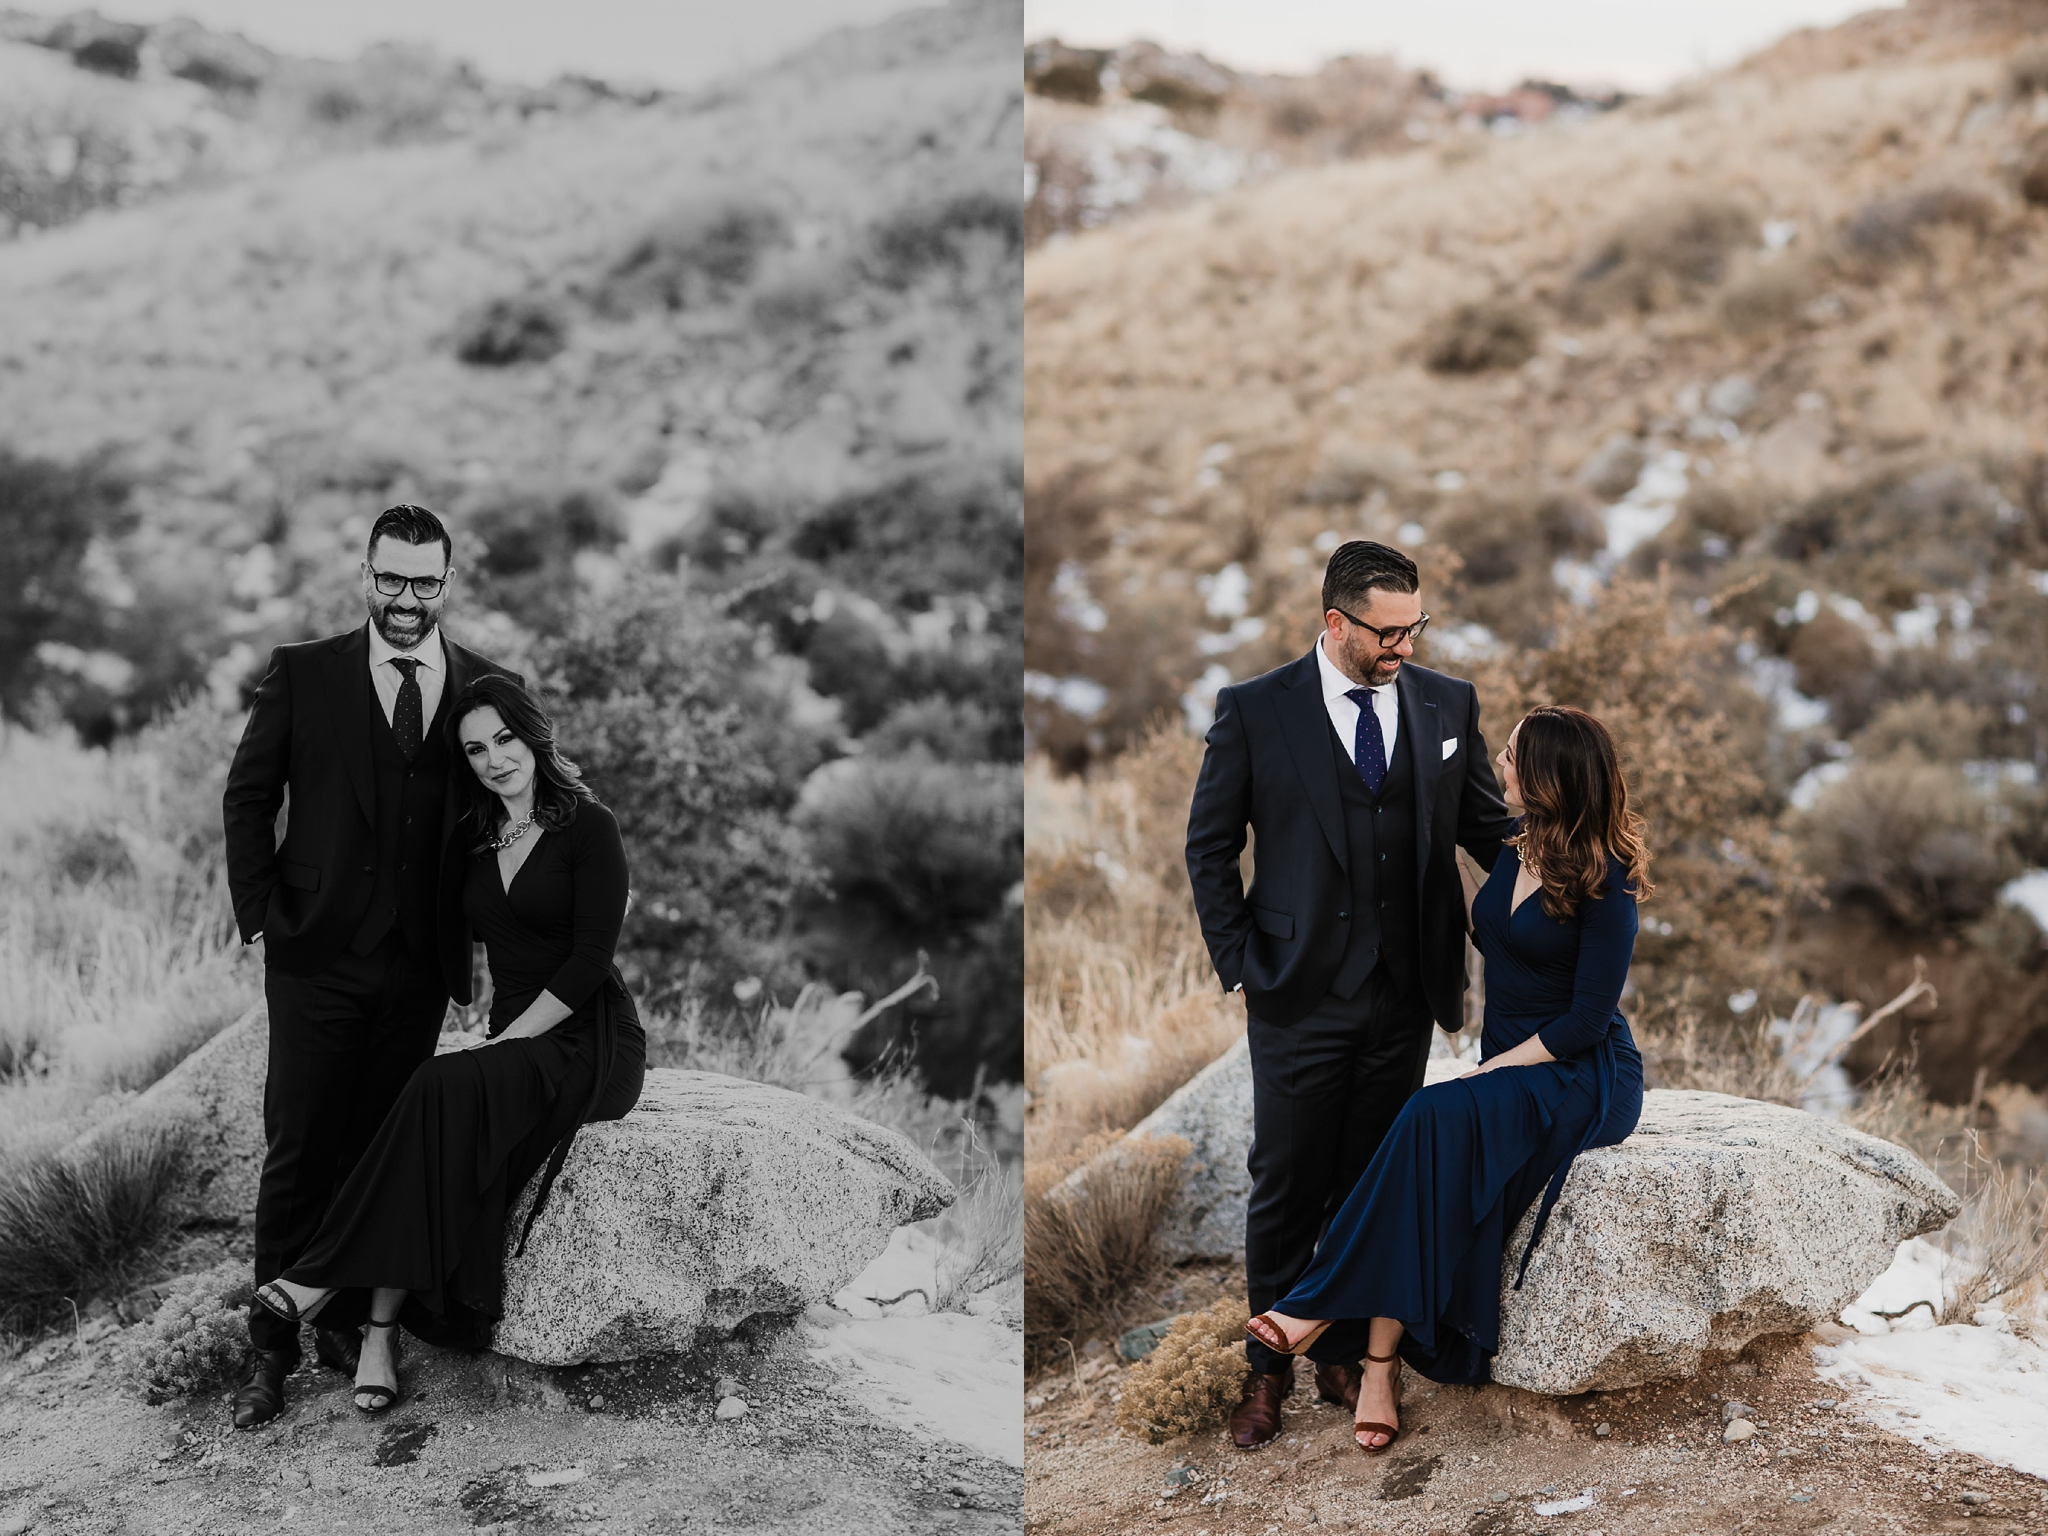 Alicia+lucia+photography+-+albuquerque+wedding+photographer+-+santa+fe+wedding+photography+-+new+mexico+wedding+photographer+-+new+mexico+wedding+-+engagement+-+winter+engagement+-+albuquerque+engagement_0017.jpg